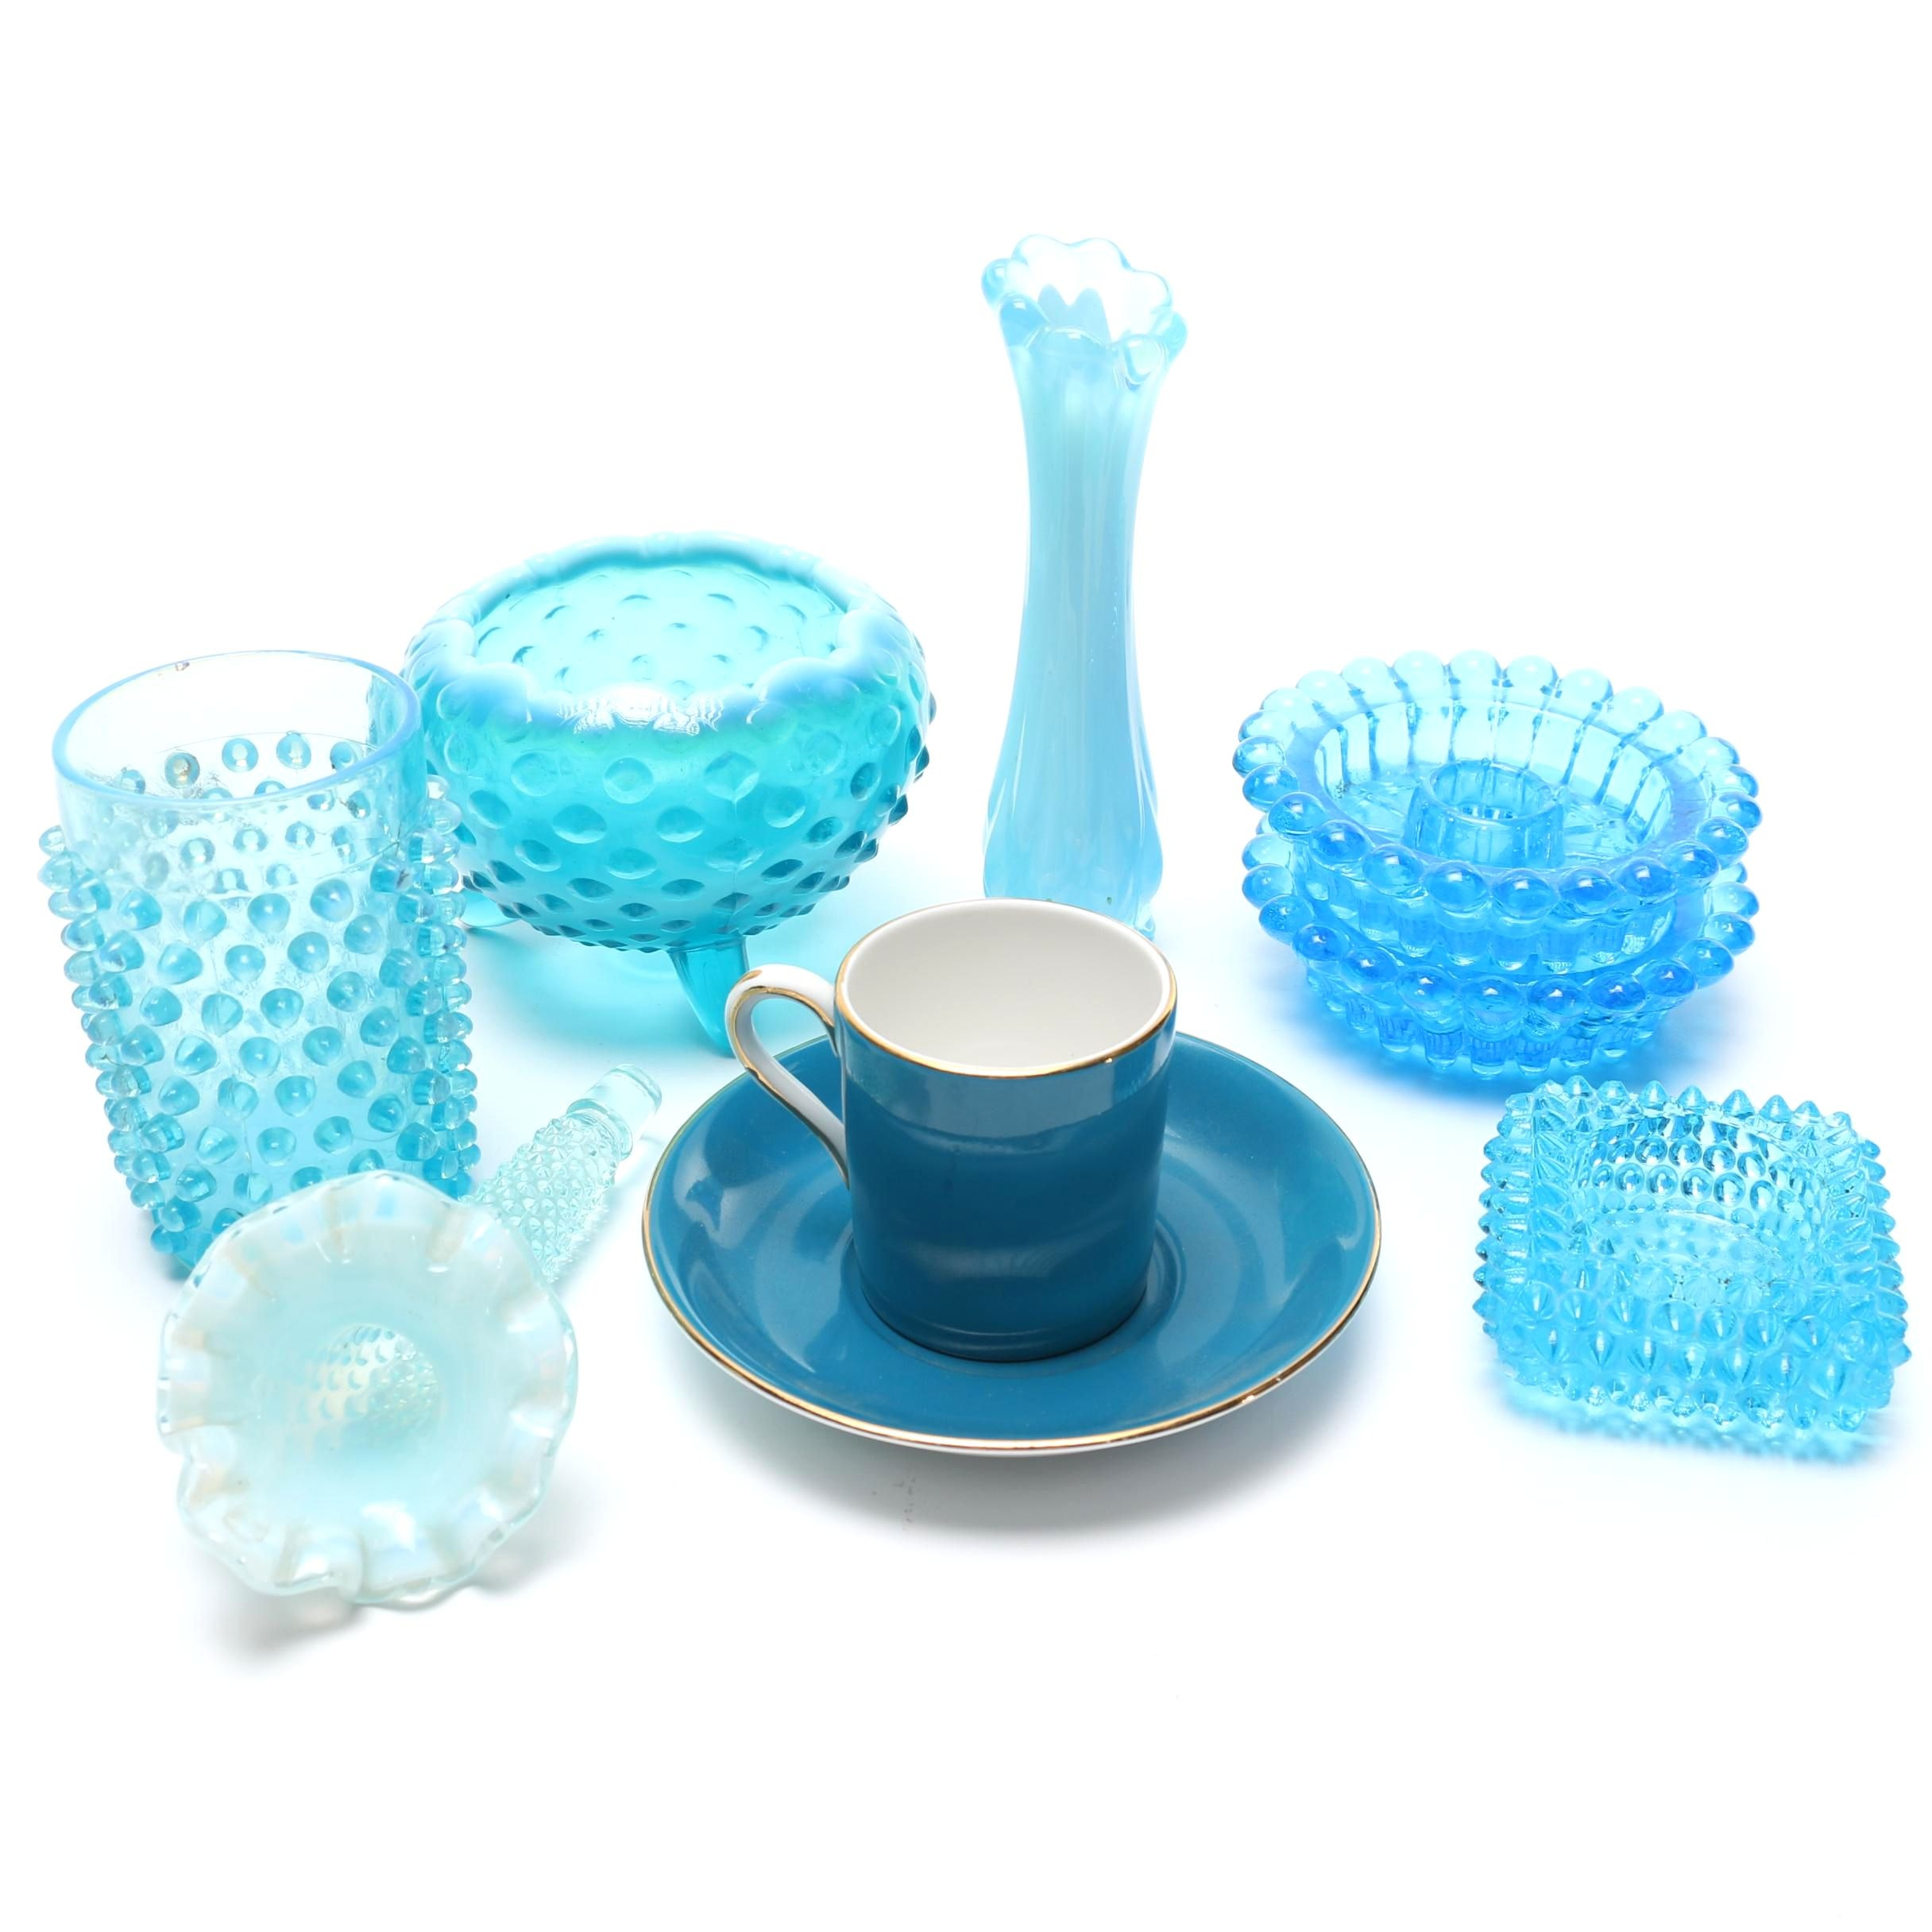 Blue Glassware and Royal Grafton Teacup and Saucer Set